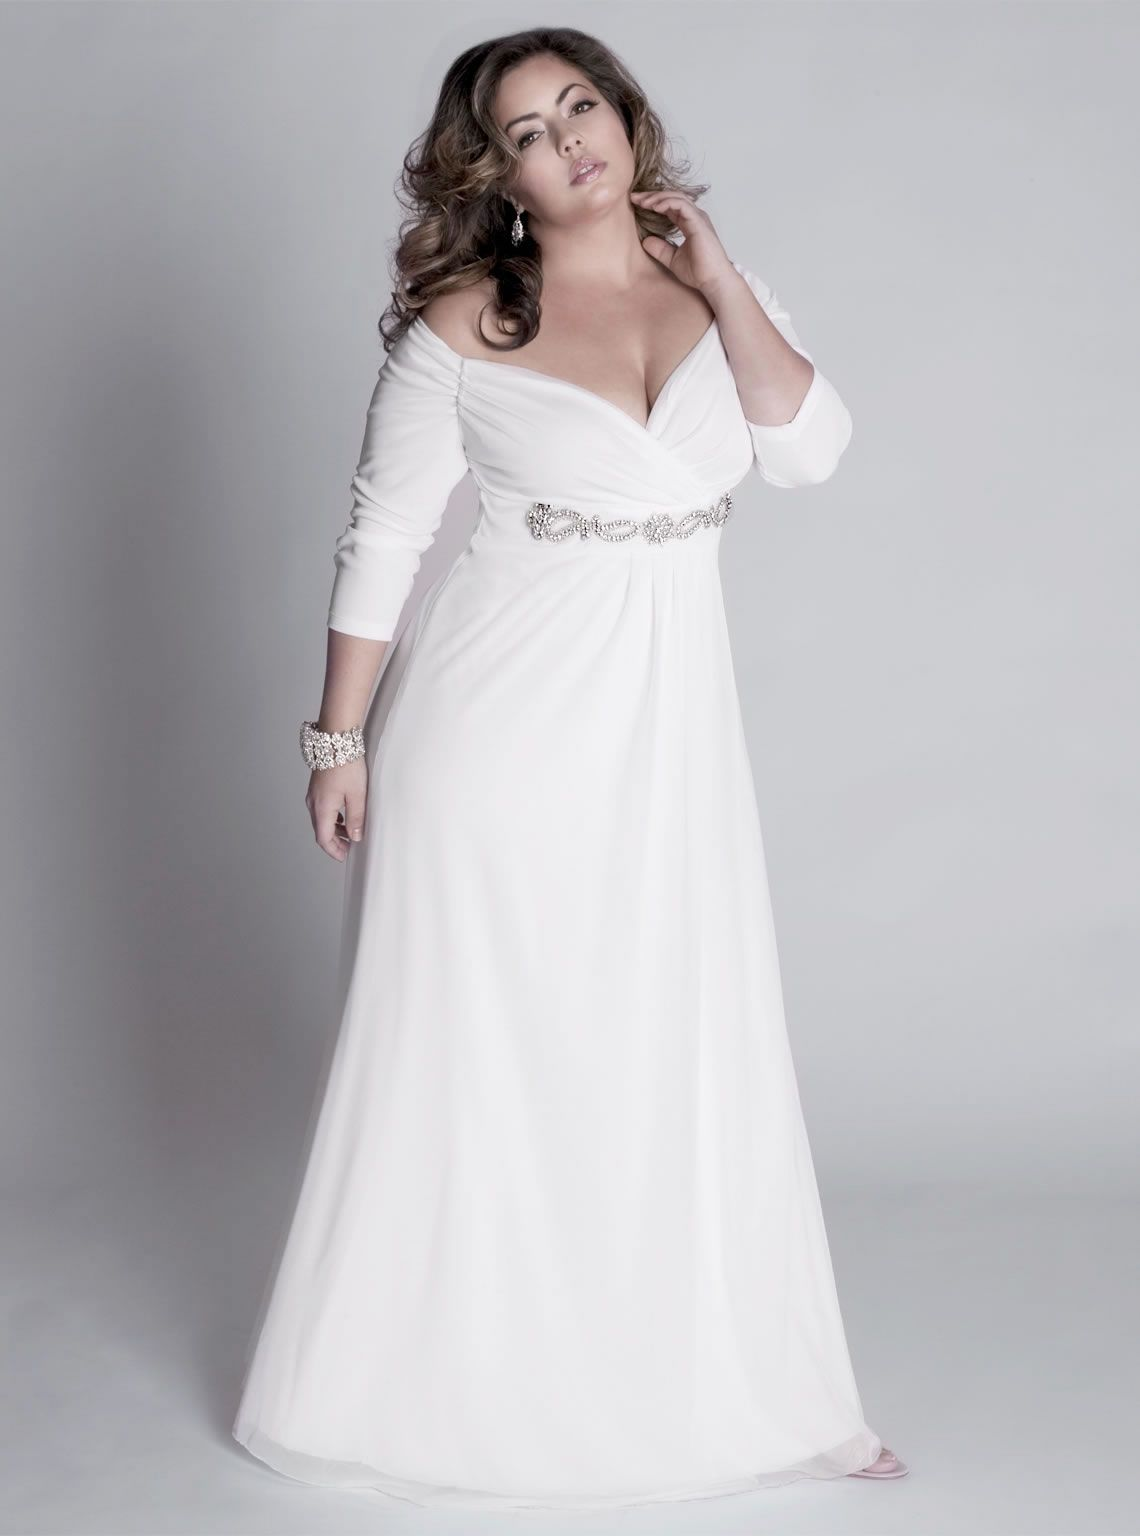 3/4 sleeve plus size evening gowns - Darius Designs | Wedding ...